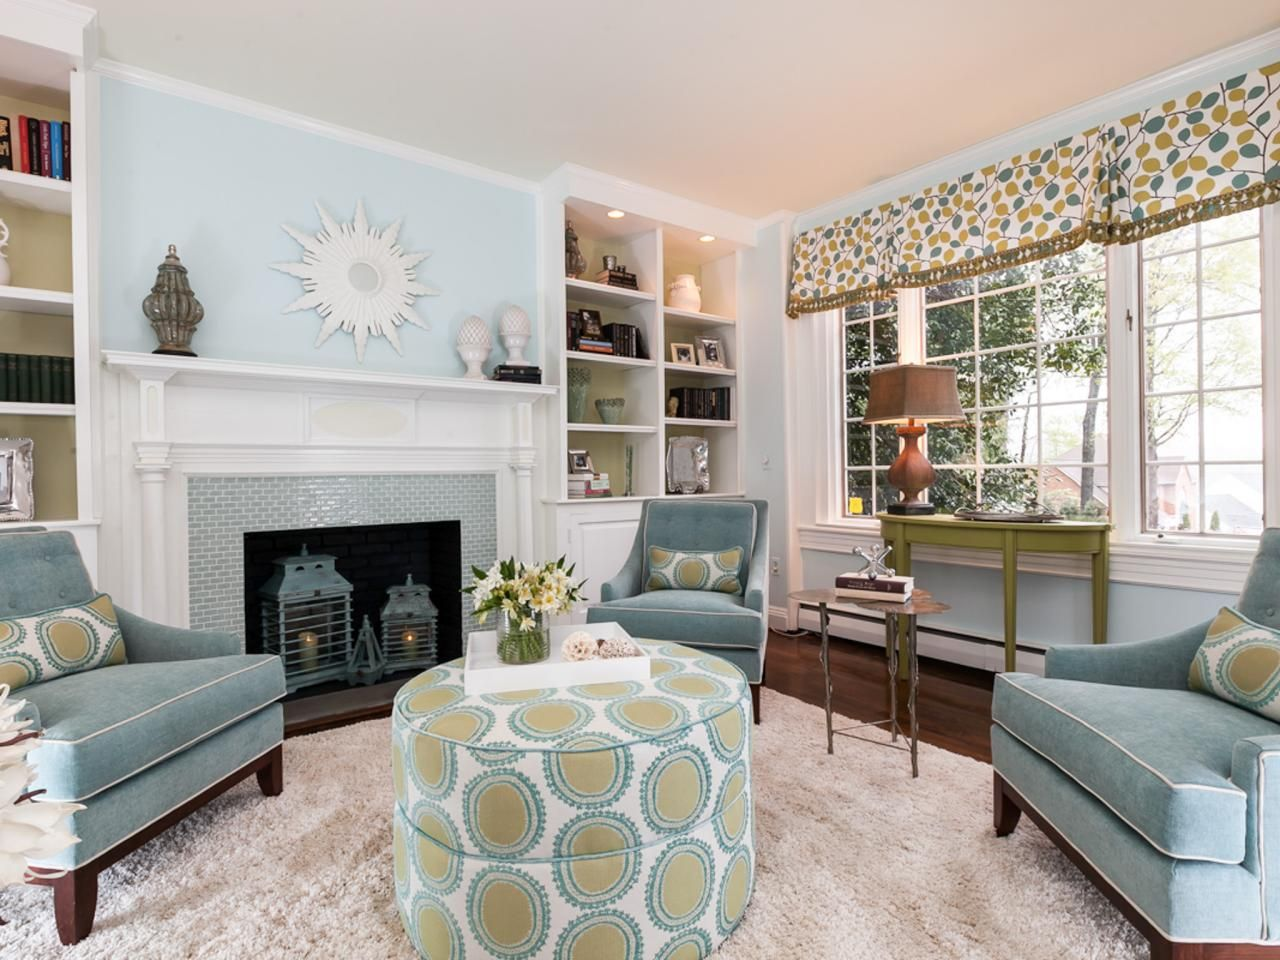 Visit HGTV To See More Of This Light Blue Transitional Living Room With Tiled Fireplace Surround